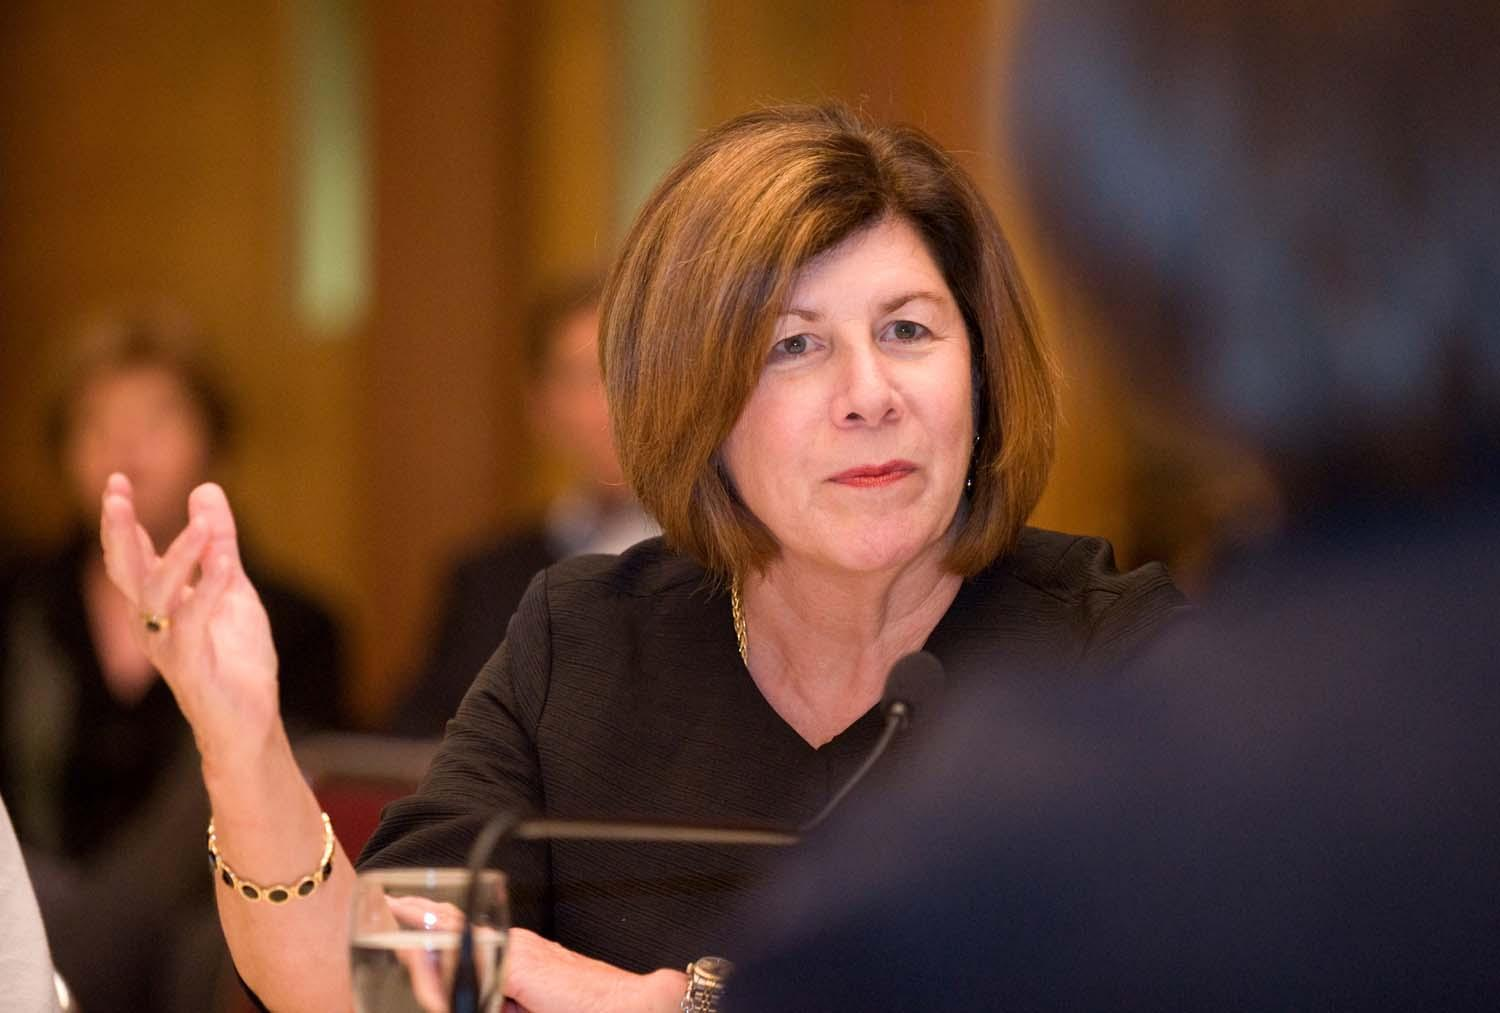 University of San Diego President Mary Lyons offered many thoughtful insights from her experience as a leader of both secular and Catholic colleges.